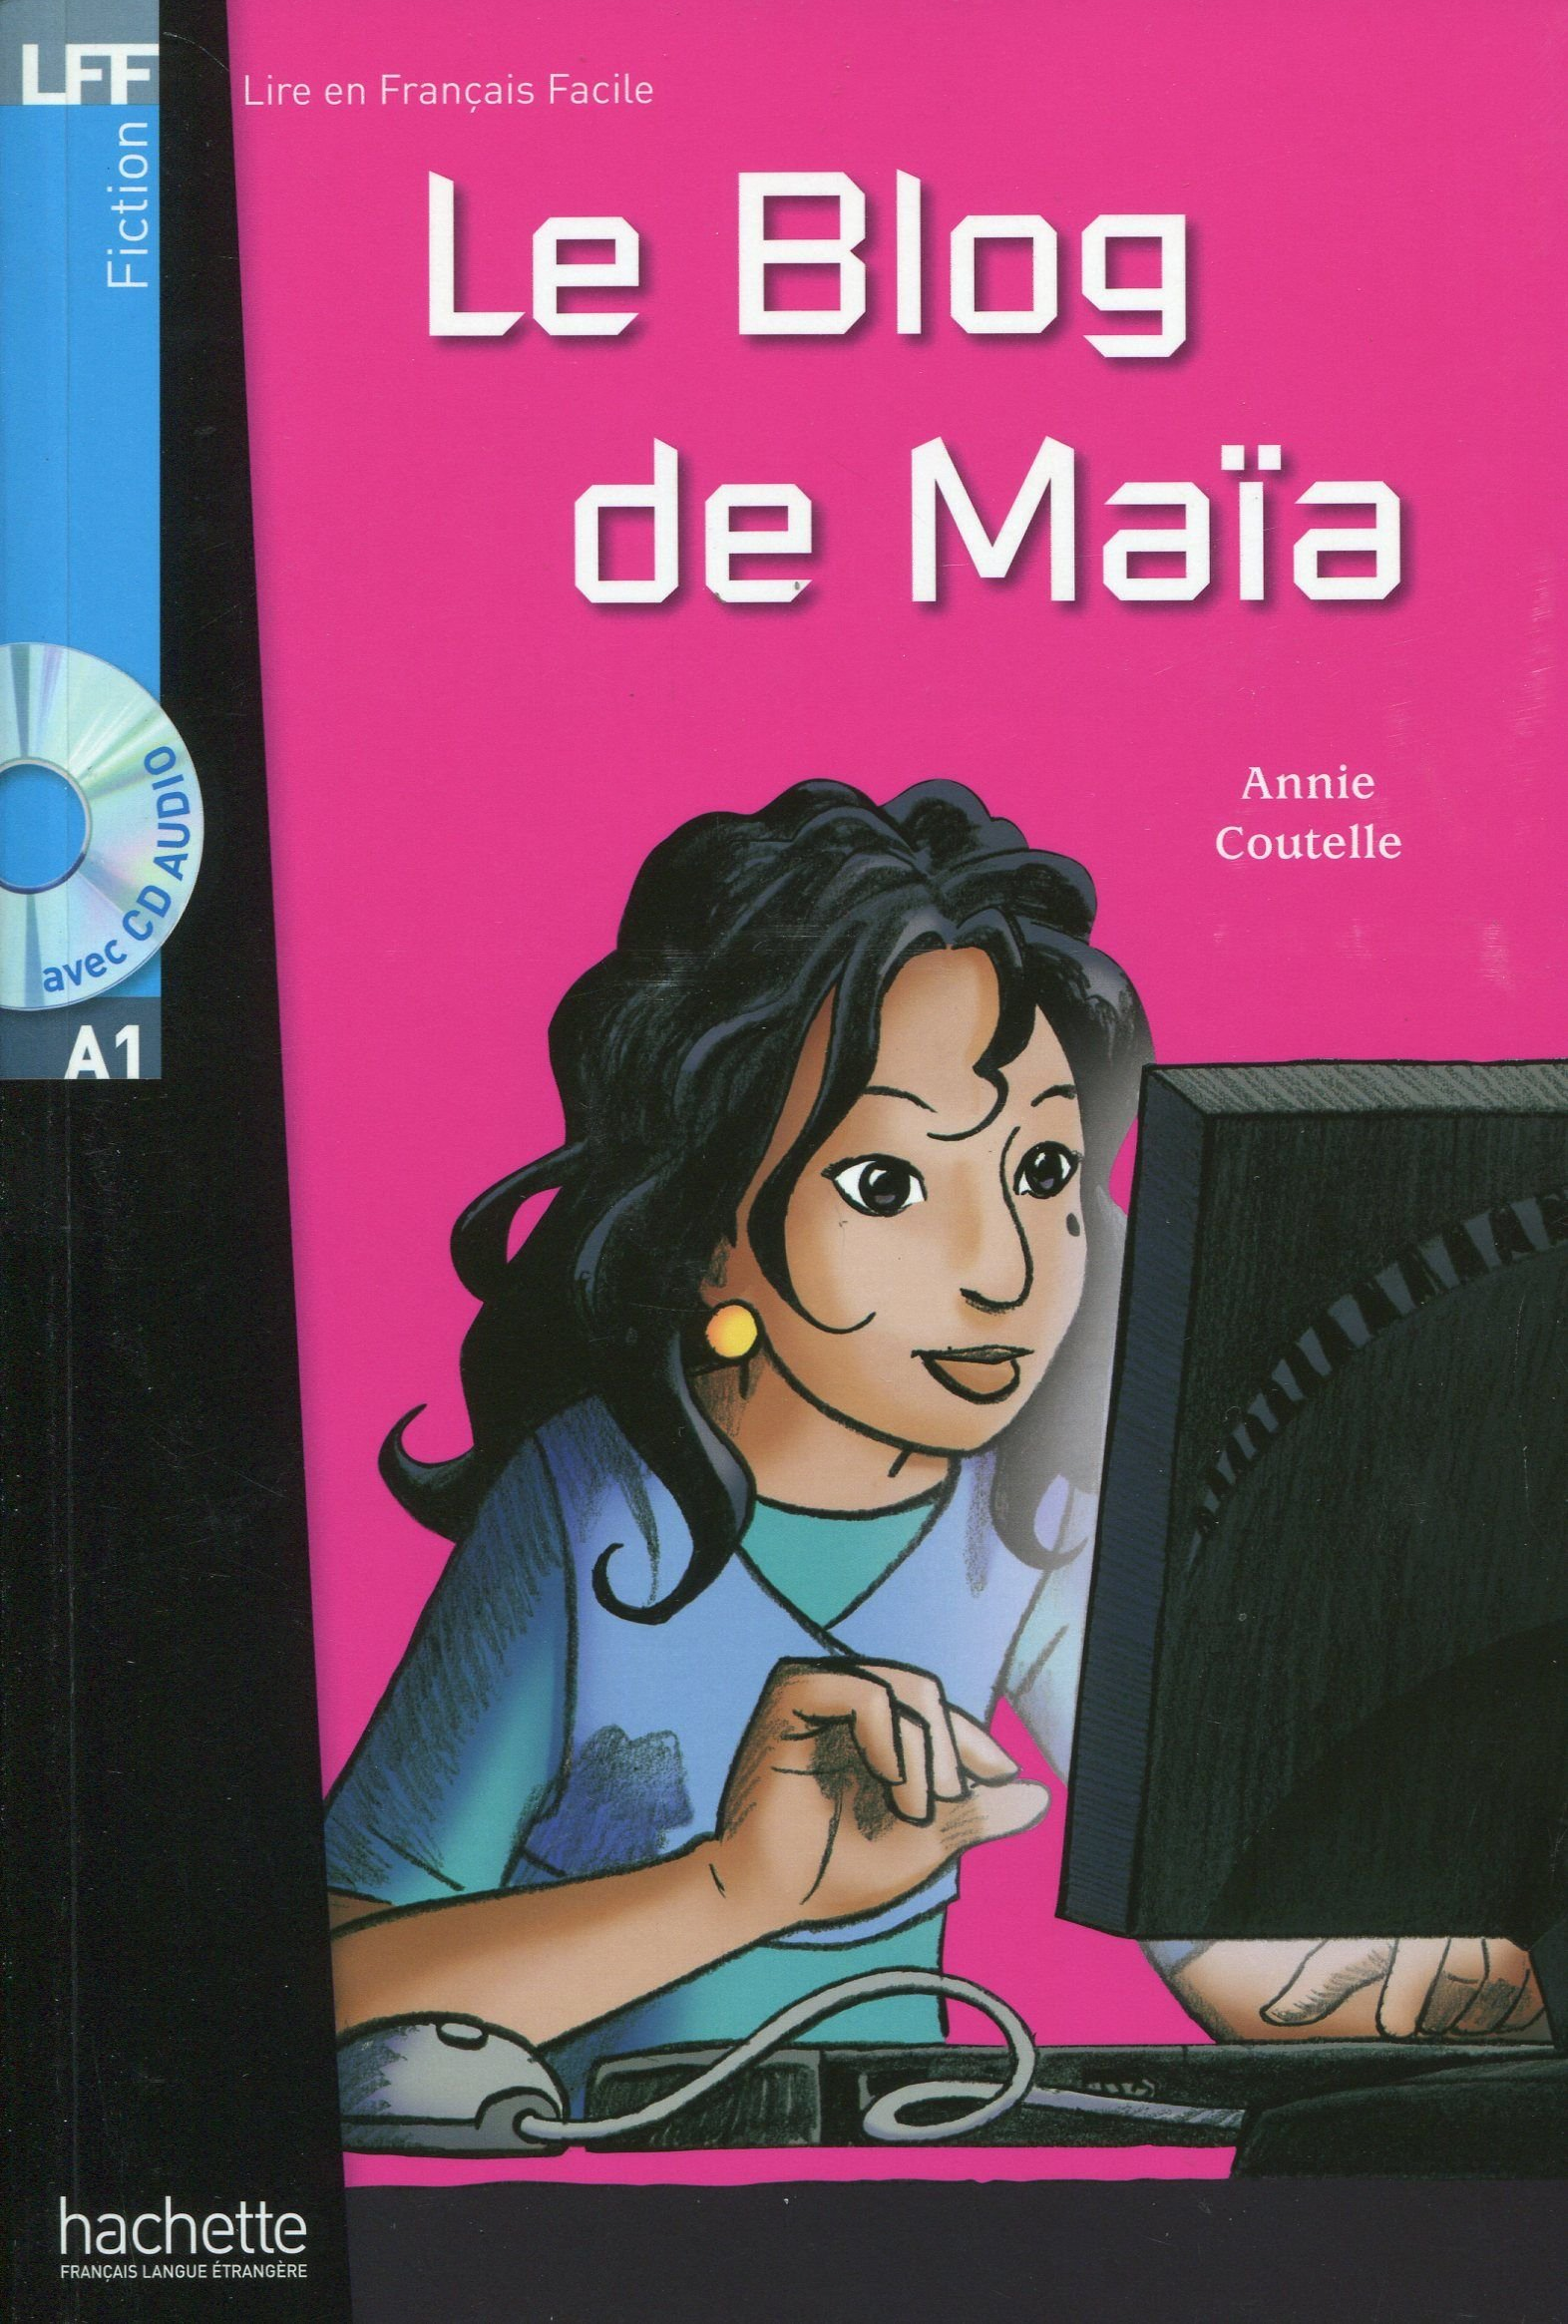 Le Blog De Maia Livre Cd Audio Amazon Co Uk Annie